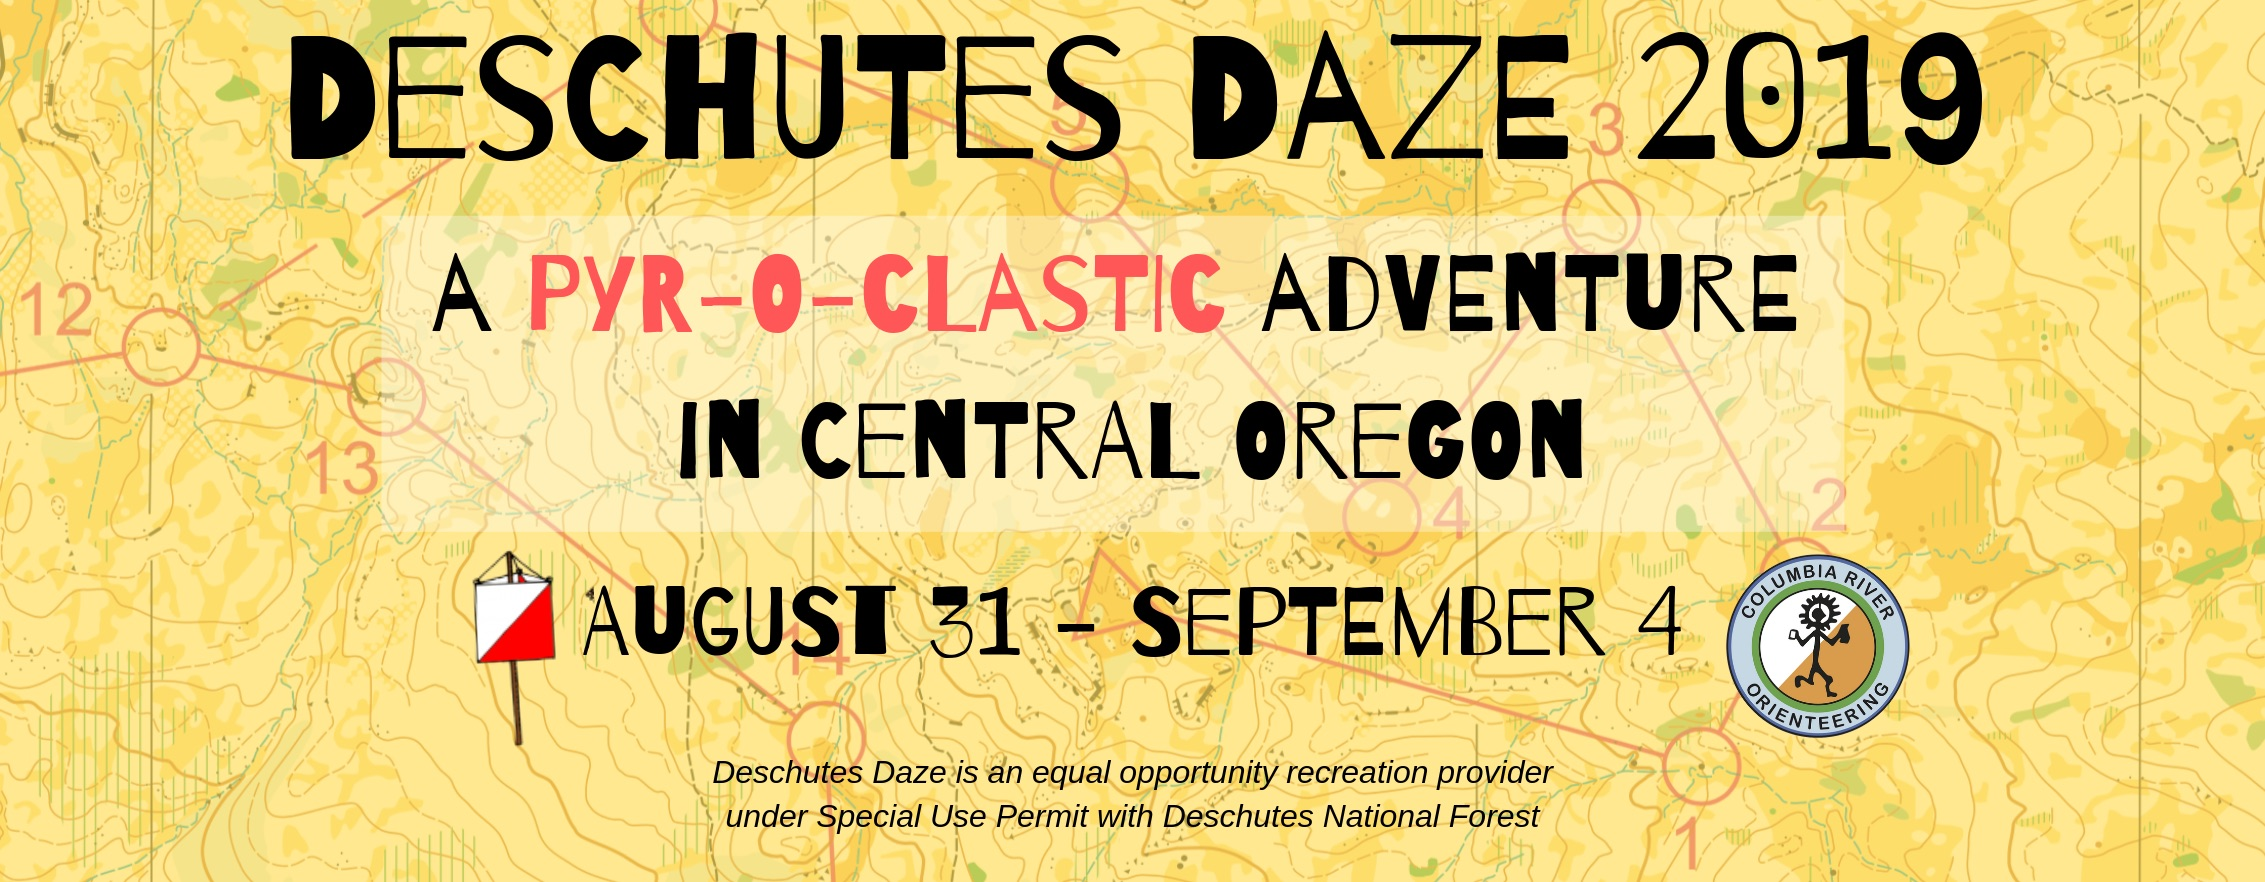 Deschutes Daze for website-1.jpg